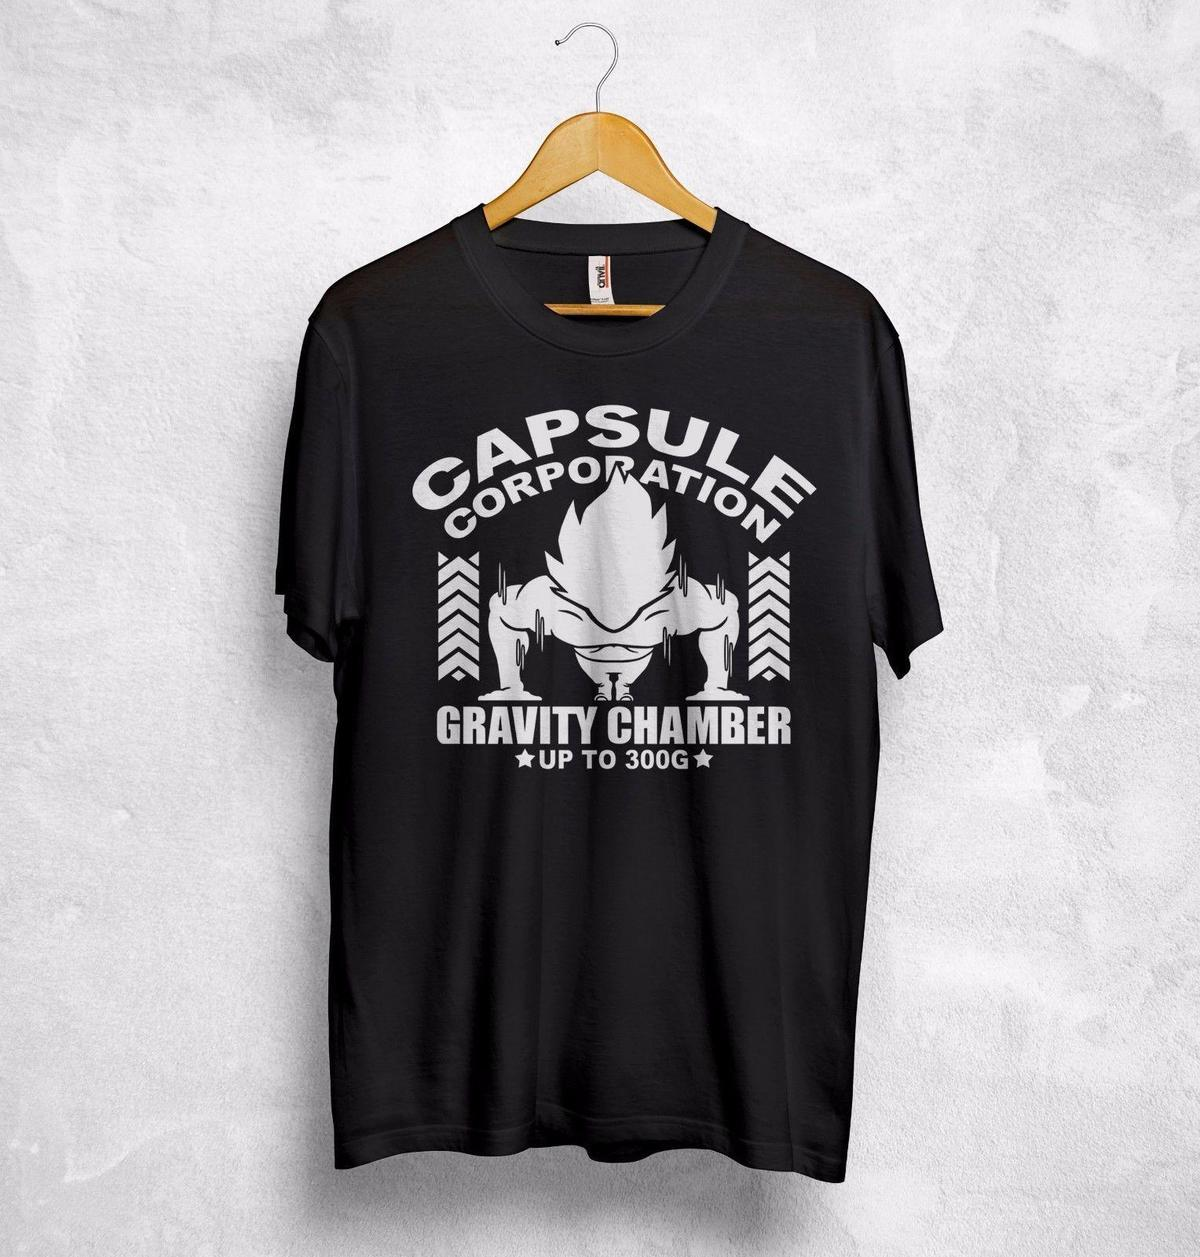 Capsule Corp Corporation Maglietta Gravity Chamber Dragon Ball Son Goku Vegeta